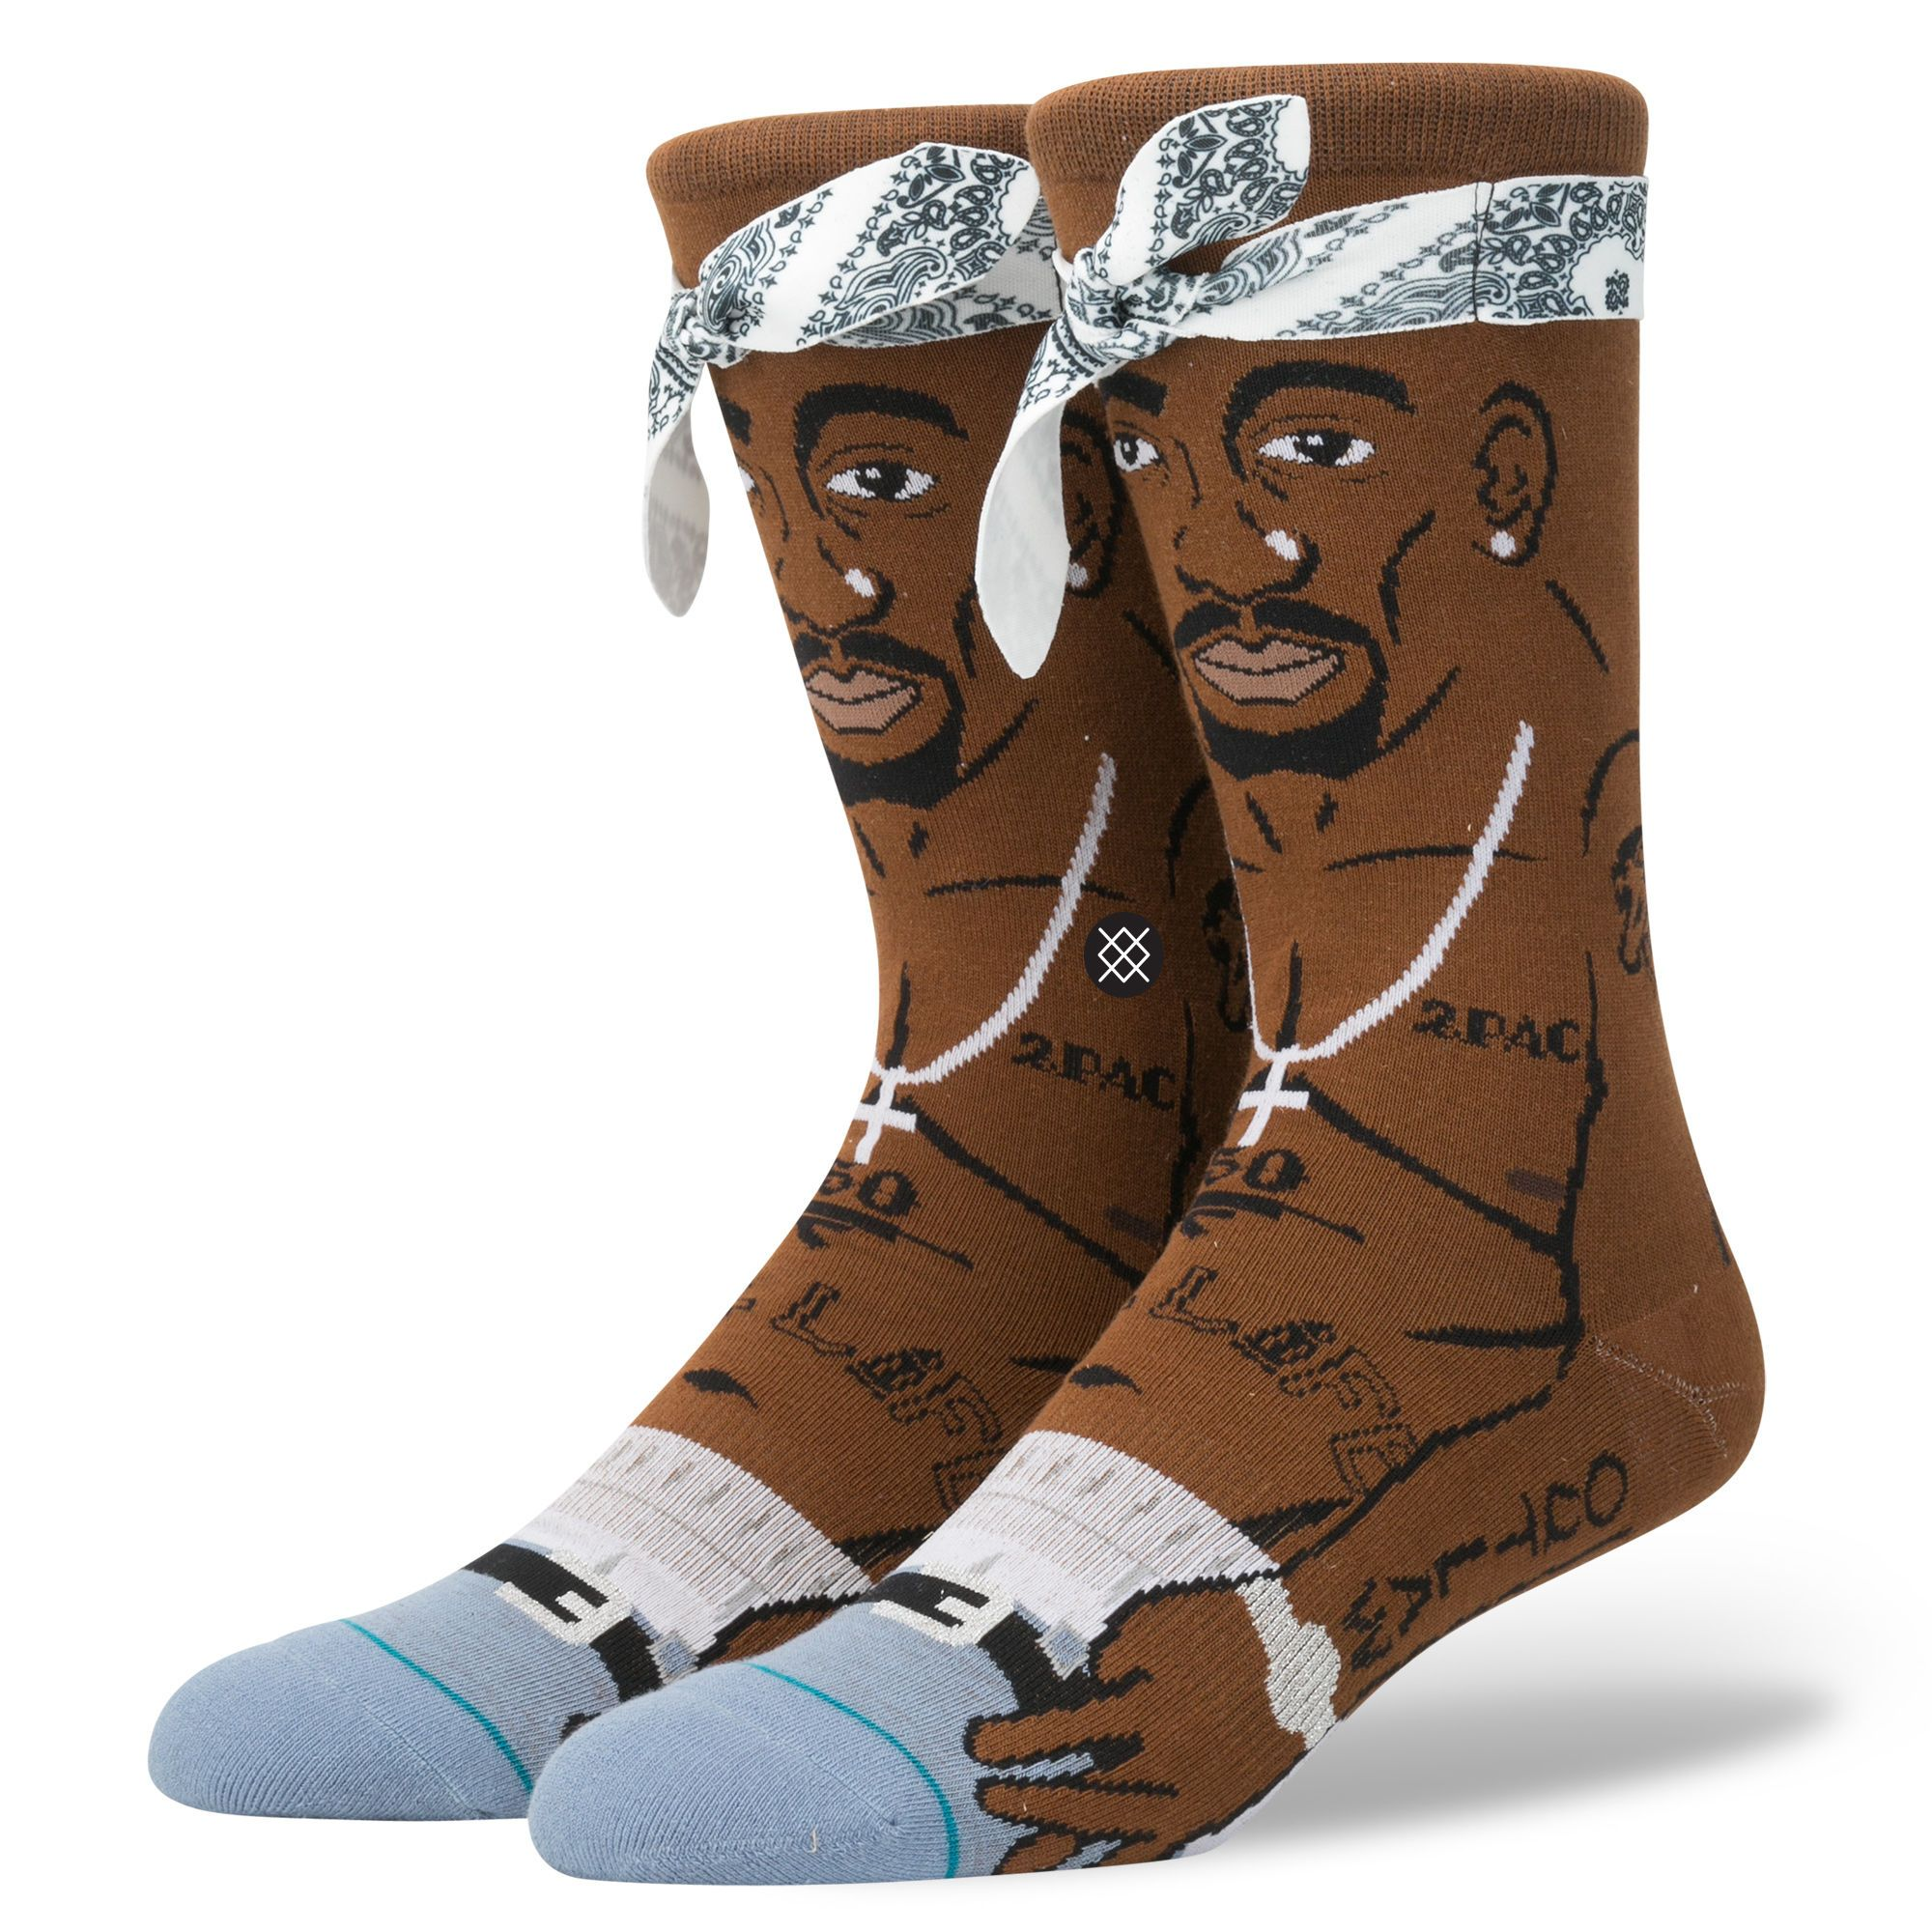 Tupac Mens Anthem Socks Stance Socks Socks Sock Shoes